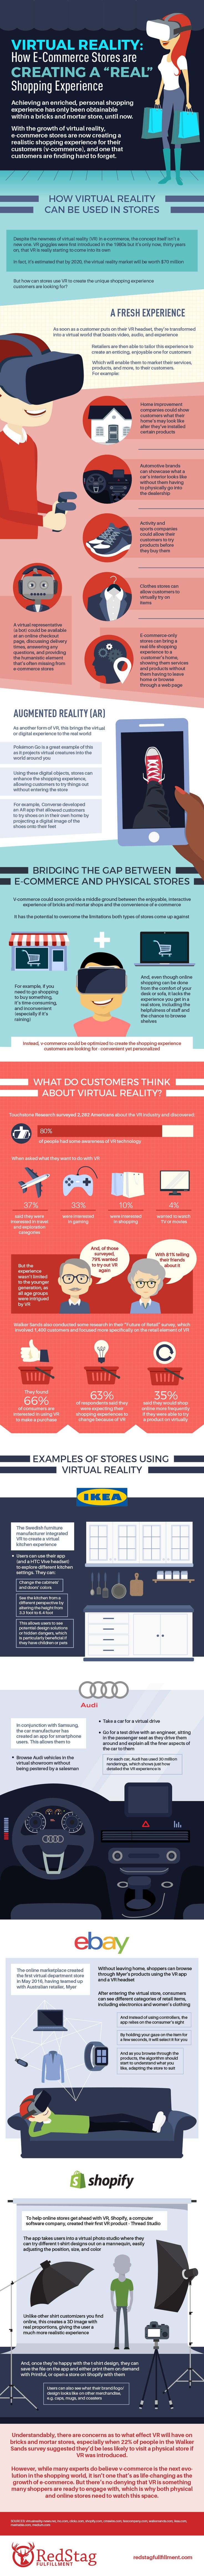 How Virtual Reality (VR) is Drastically Enhancing the eCommerce Shopping Experience (infographic)